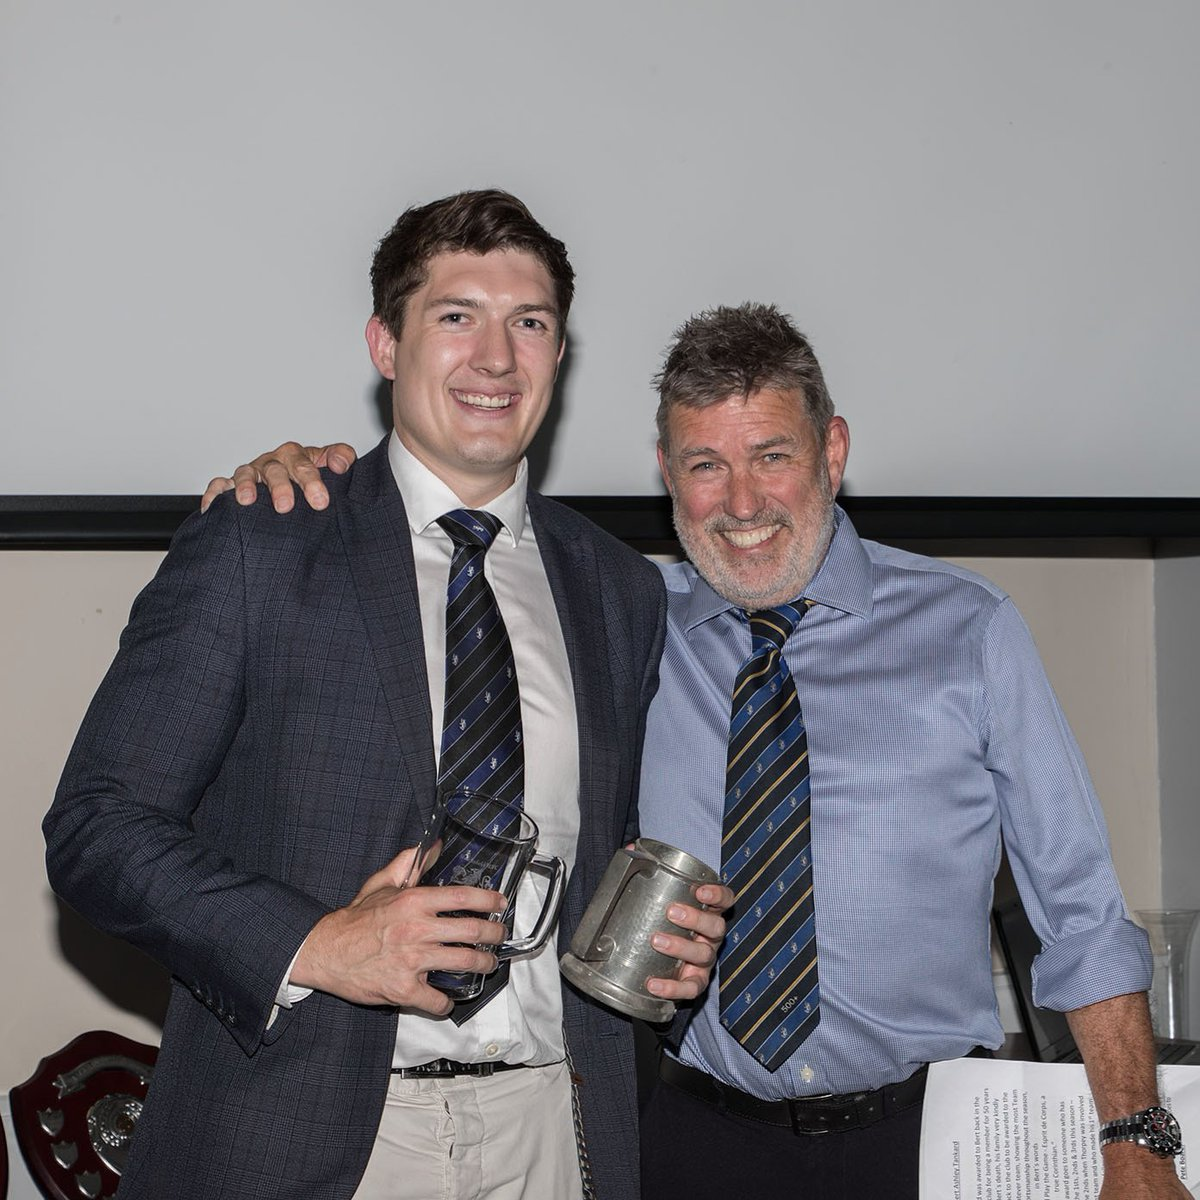 test Twitter Media - Pete Board Scooping up the Bert Ashley tankard for services to the club at the awards dinner! #clubman #maccrugby #Macclesfield #cheshirerugby @peteharperMRUFC https://t.co/DOLqpnrL25